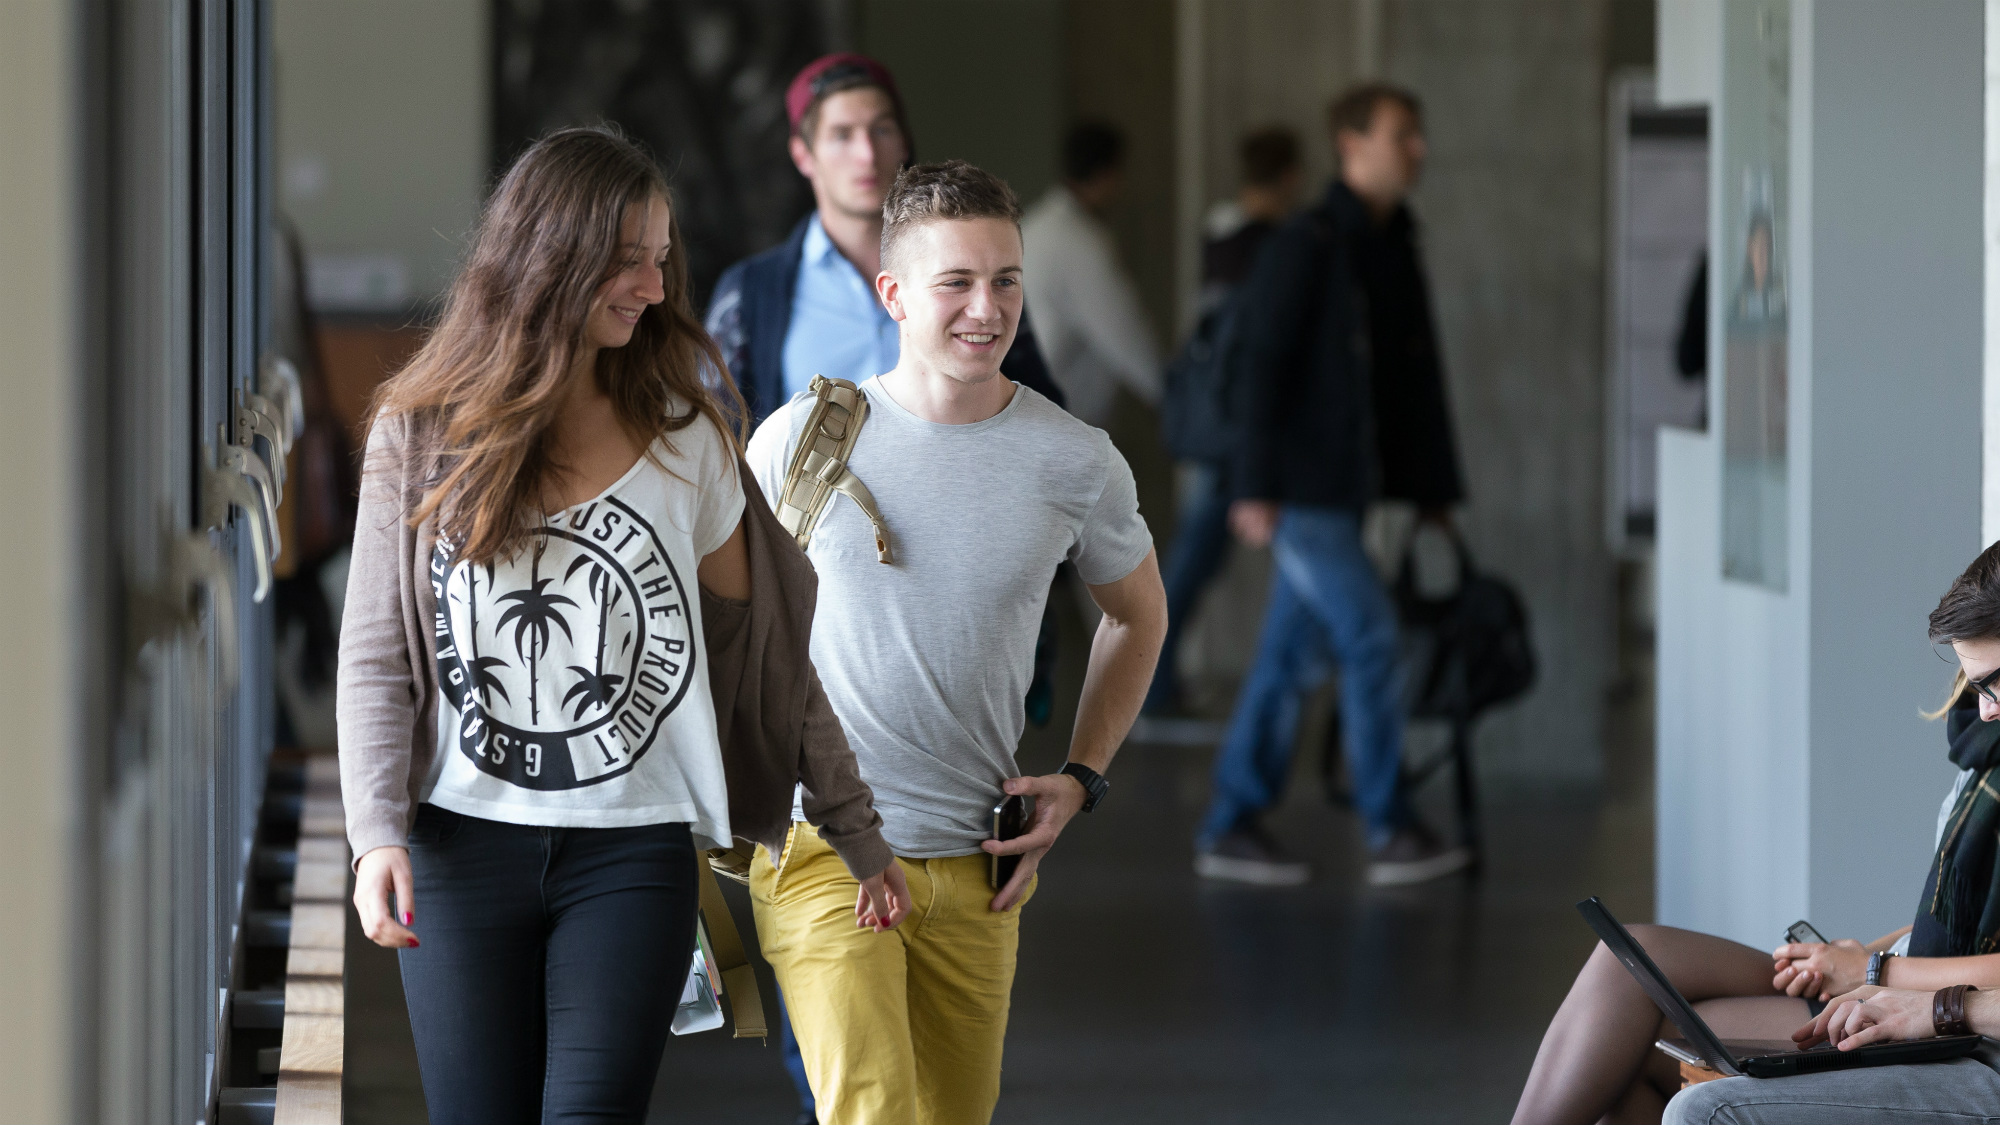 Students in the Main Building at the University of St.Gallen (HSG)